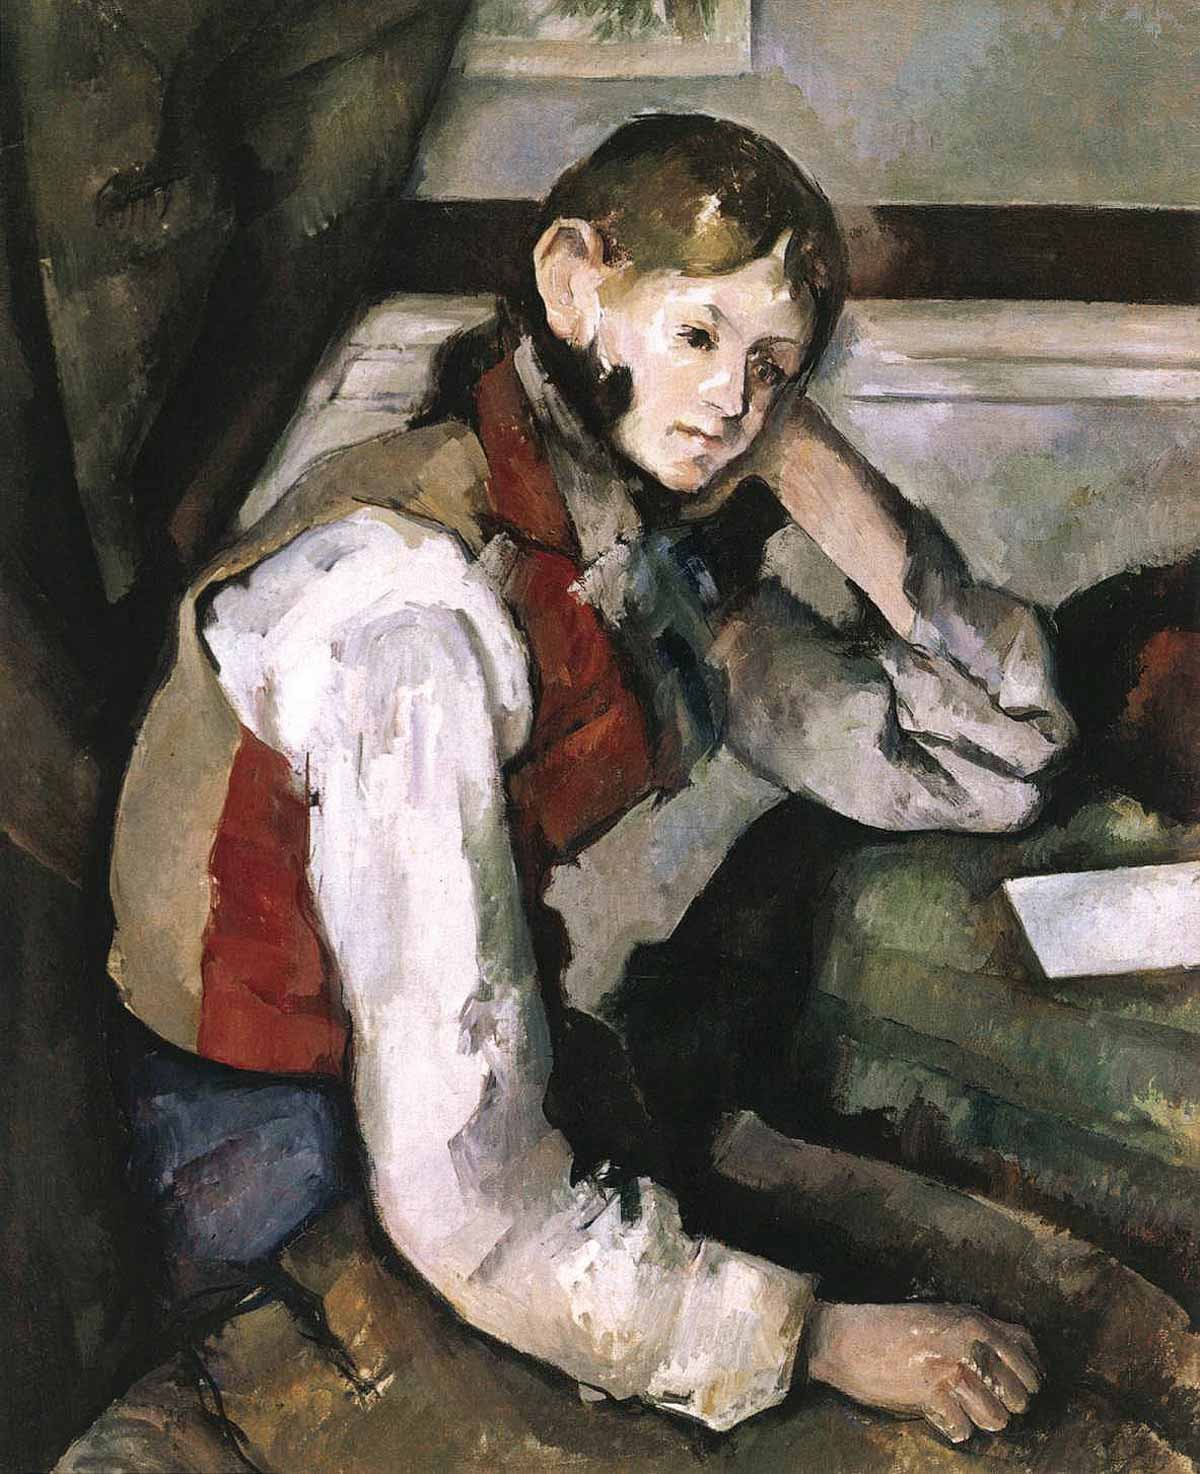 Stolen painting: Paul Cézanne: The boy in the red vest (1890)